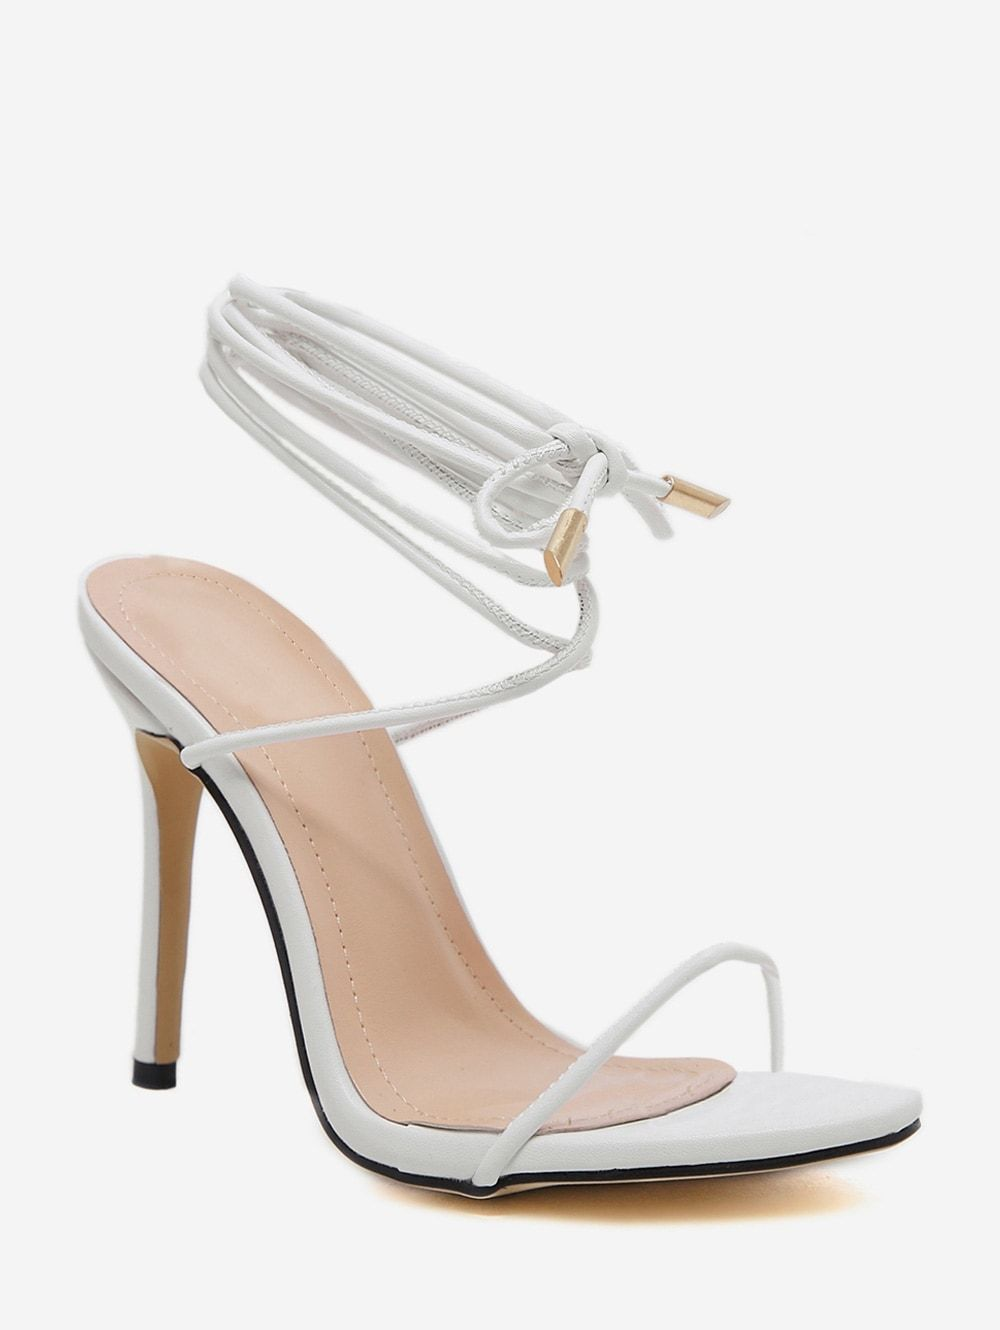 Rope Lace Up High Heel Sandals Apricot Black White Ad High Heel Rope Lace Black Lace Up High Heels Ankle Strap High Heels Gladiator Sandals Heels